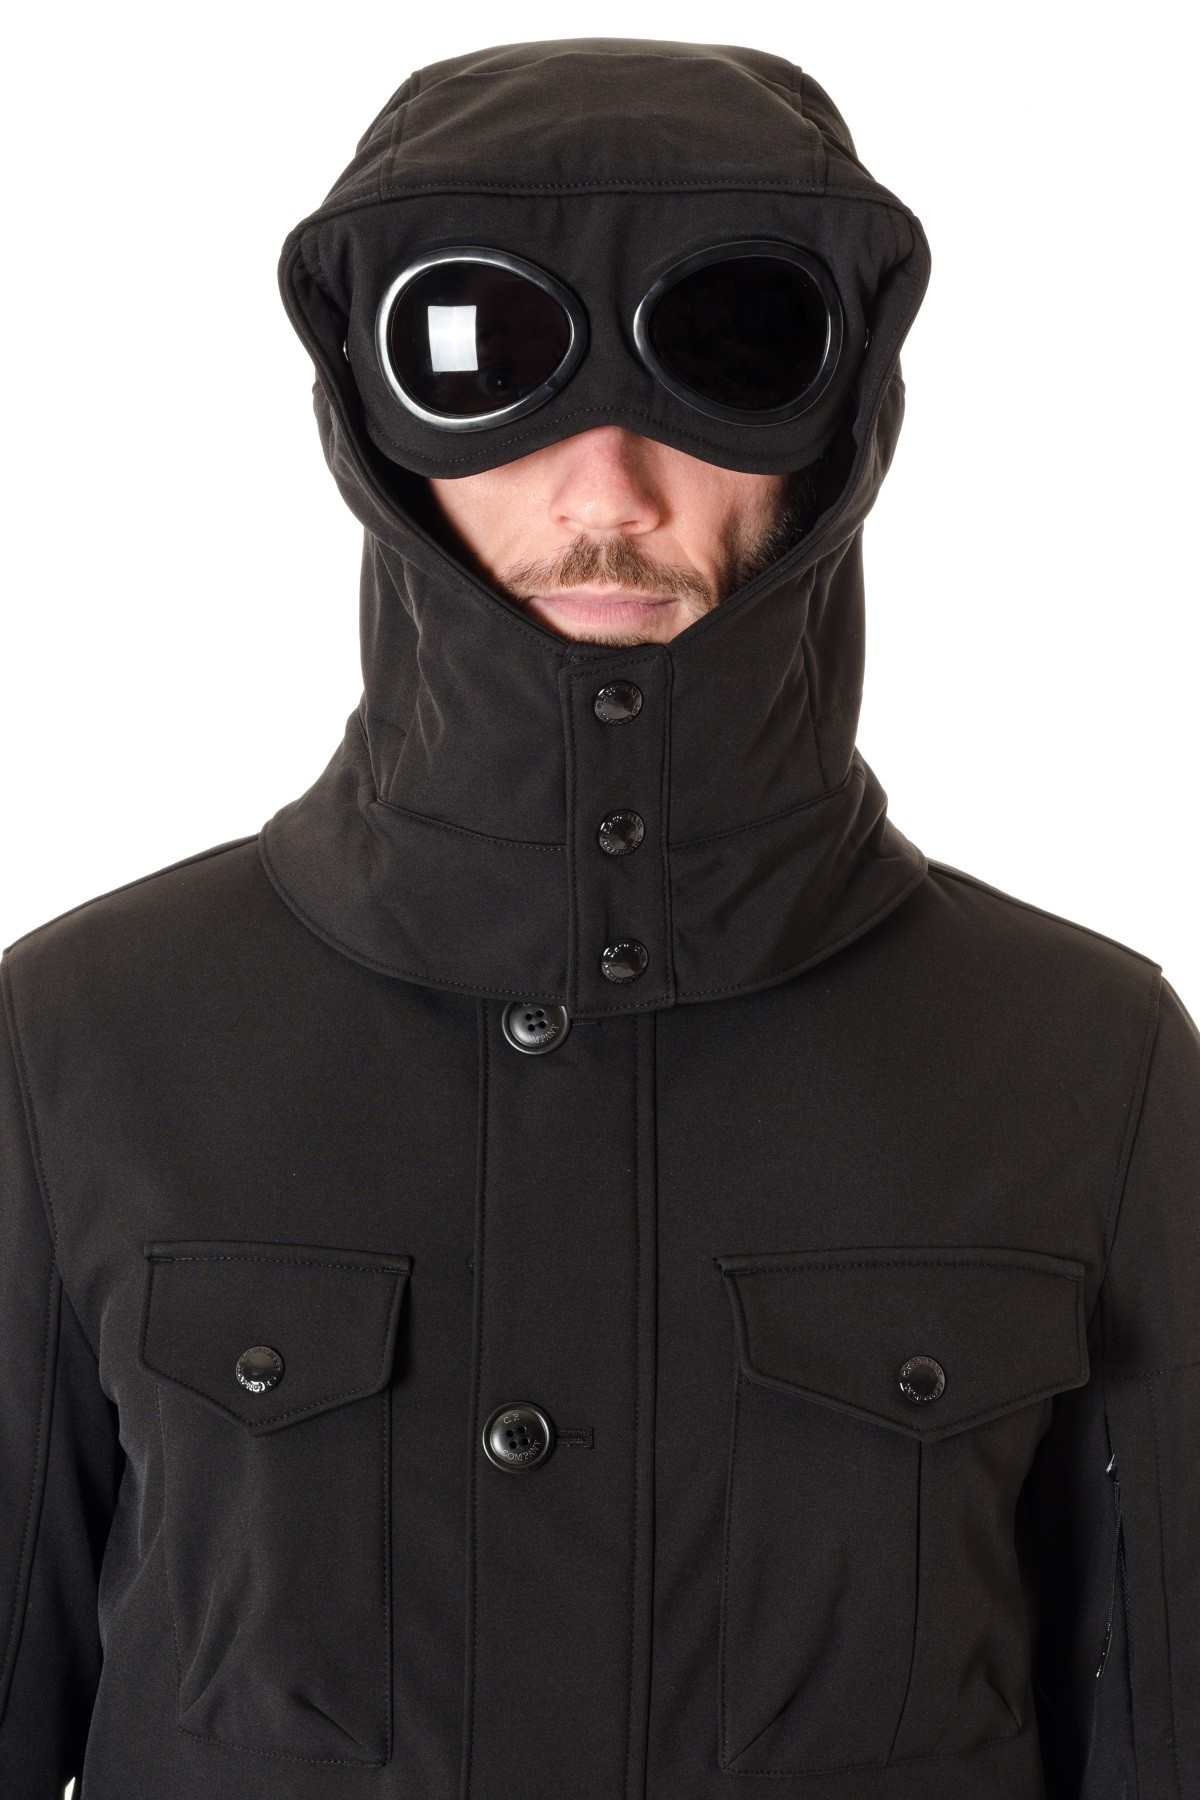 c p  company jacket for men goggle model f  w 16-17